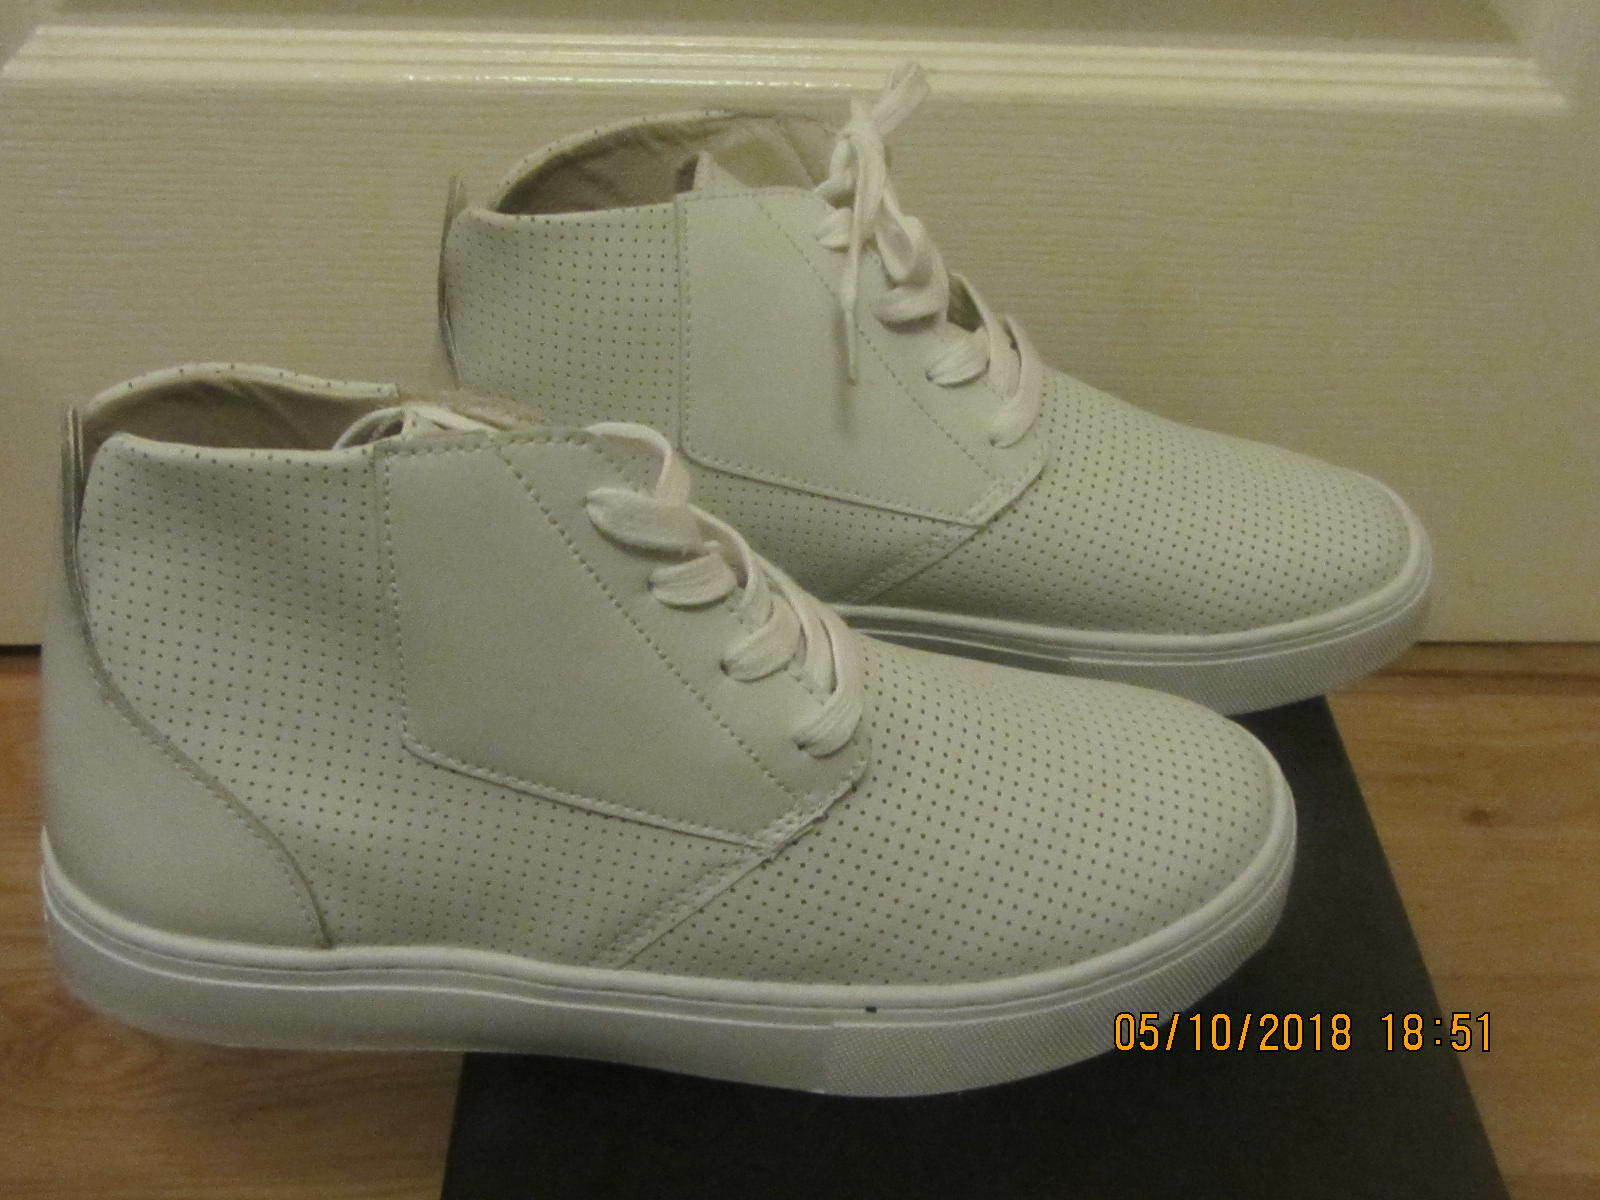 MENS RADII HAMPTON WHITE PERFORATION TRAINERS SHOES UK SIZE 7.5 41.5 NEW BOXED